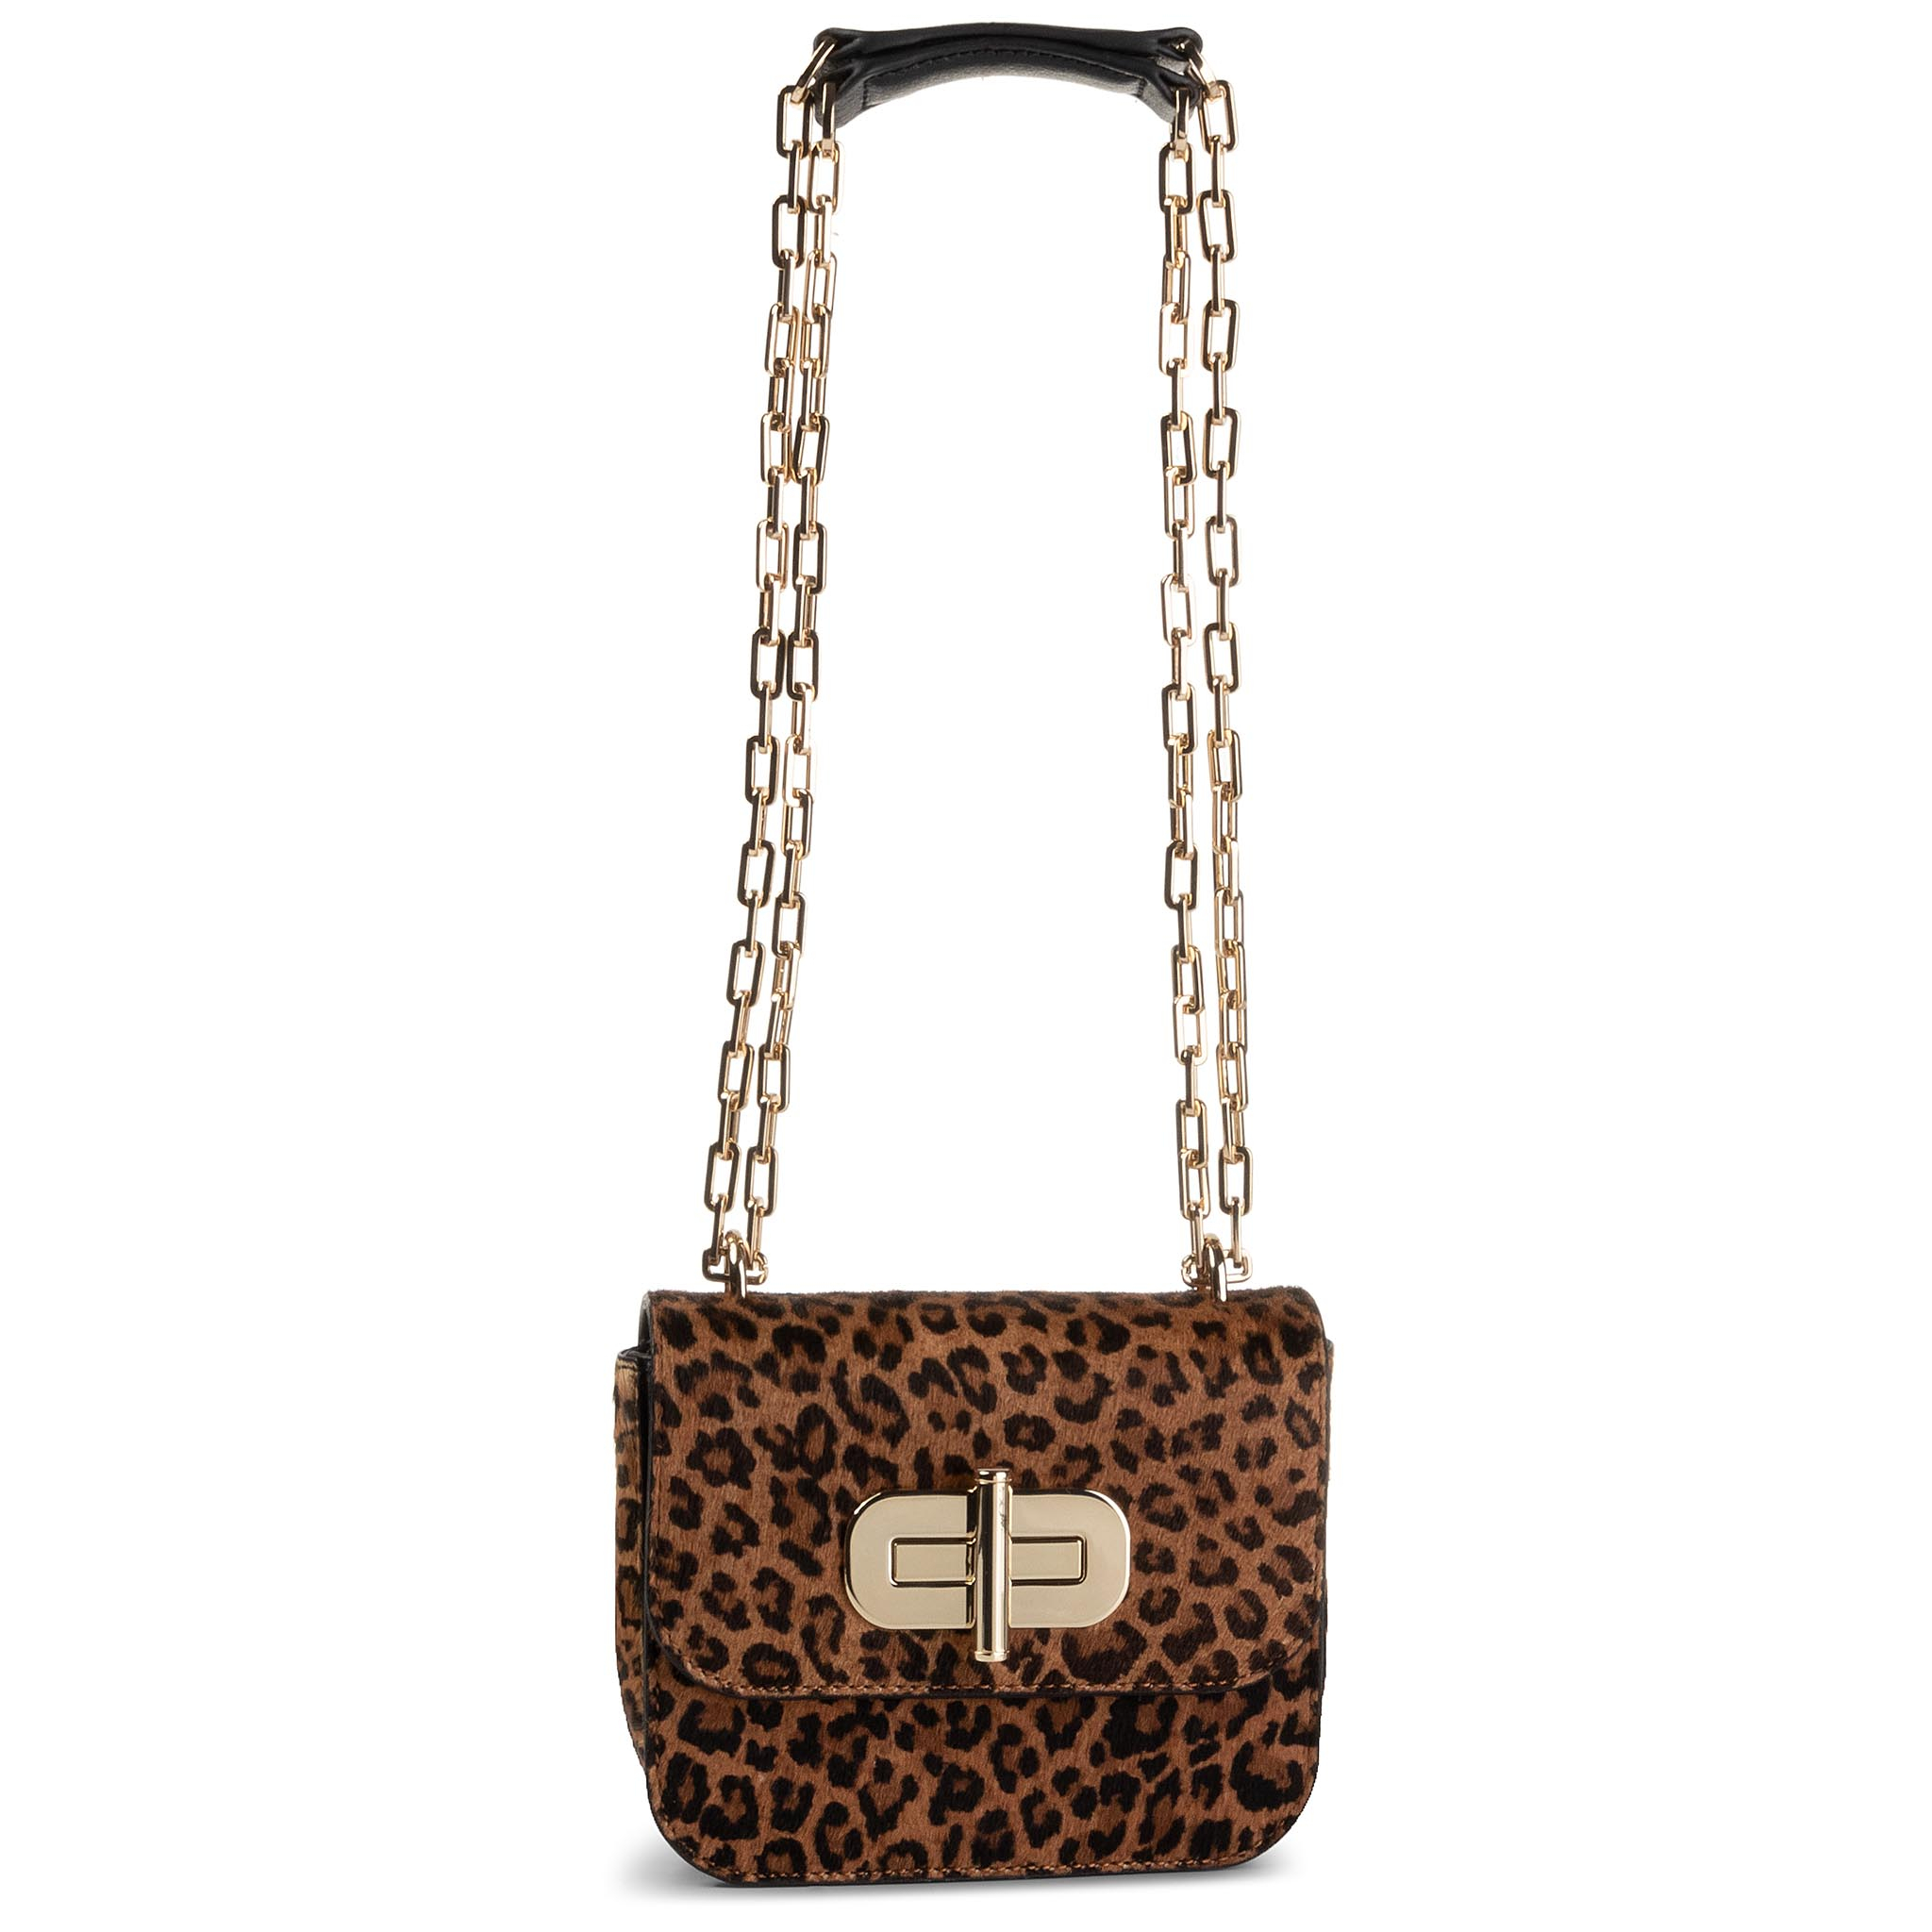 Geantă TOMMY HILFIGER - Turnlock Mini Crossover Cheeta AW0AW07418 TDQ